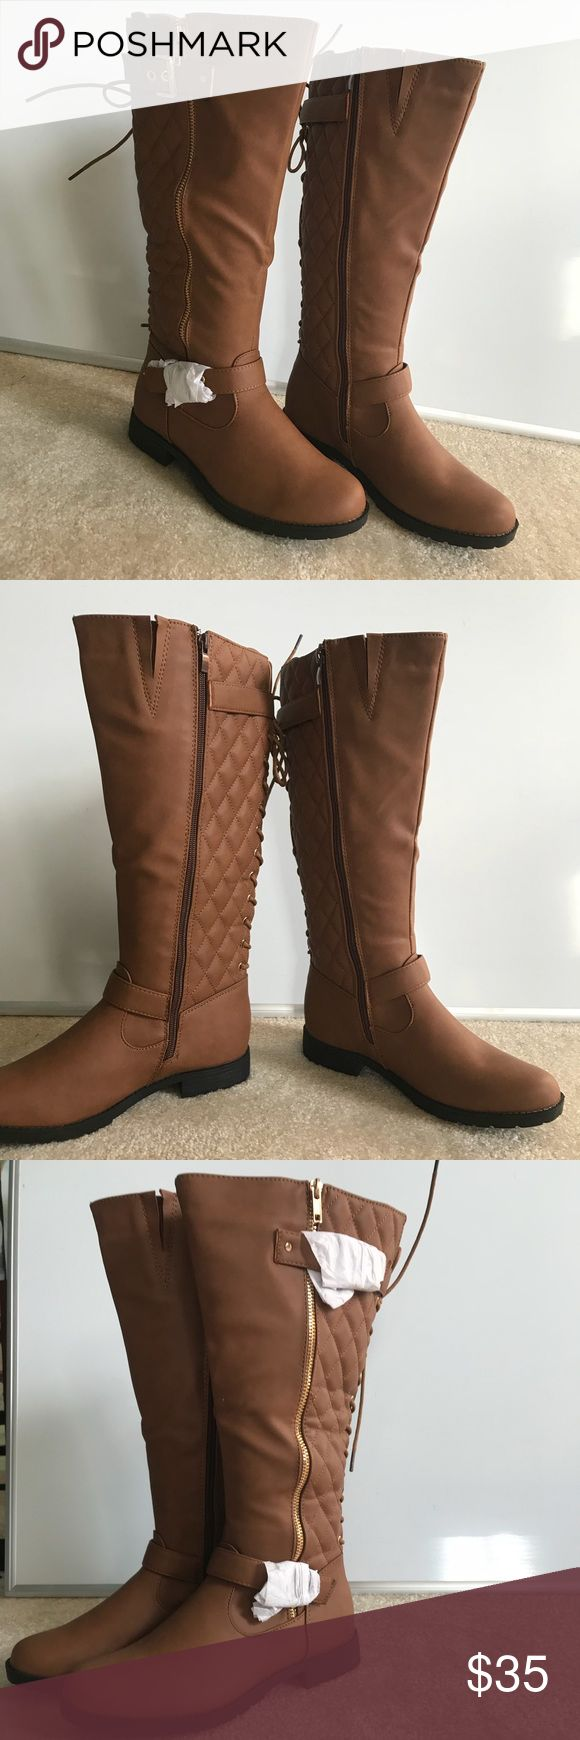 "NEW Belladia Camel Knee High Cinta Boot Size 7.5 New in box! Gorgeous brand new camel colored boots w/ 1 inch heel, 15"" shaft, 14"" circumference, side zip closure, gold hardware, quilted texture and lace up back Belladia Shoes Heeled Boots"